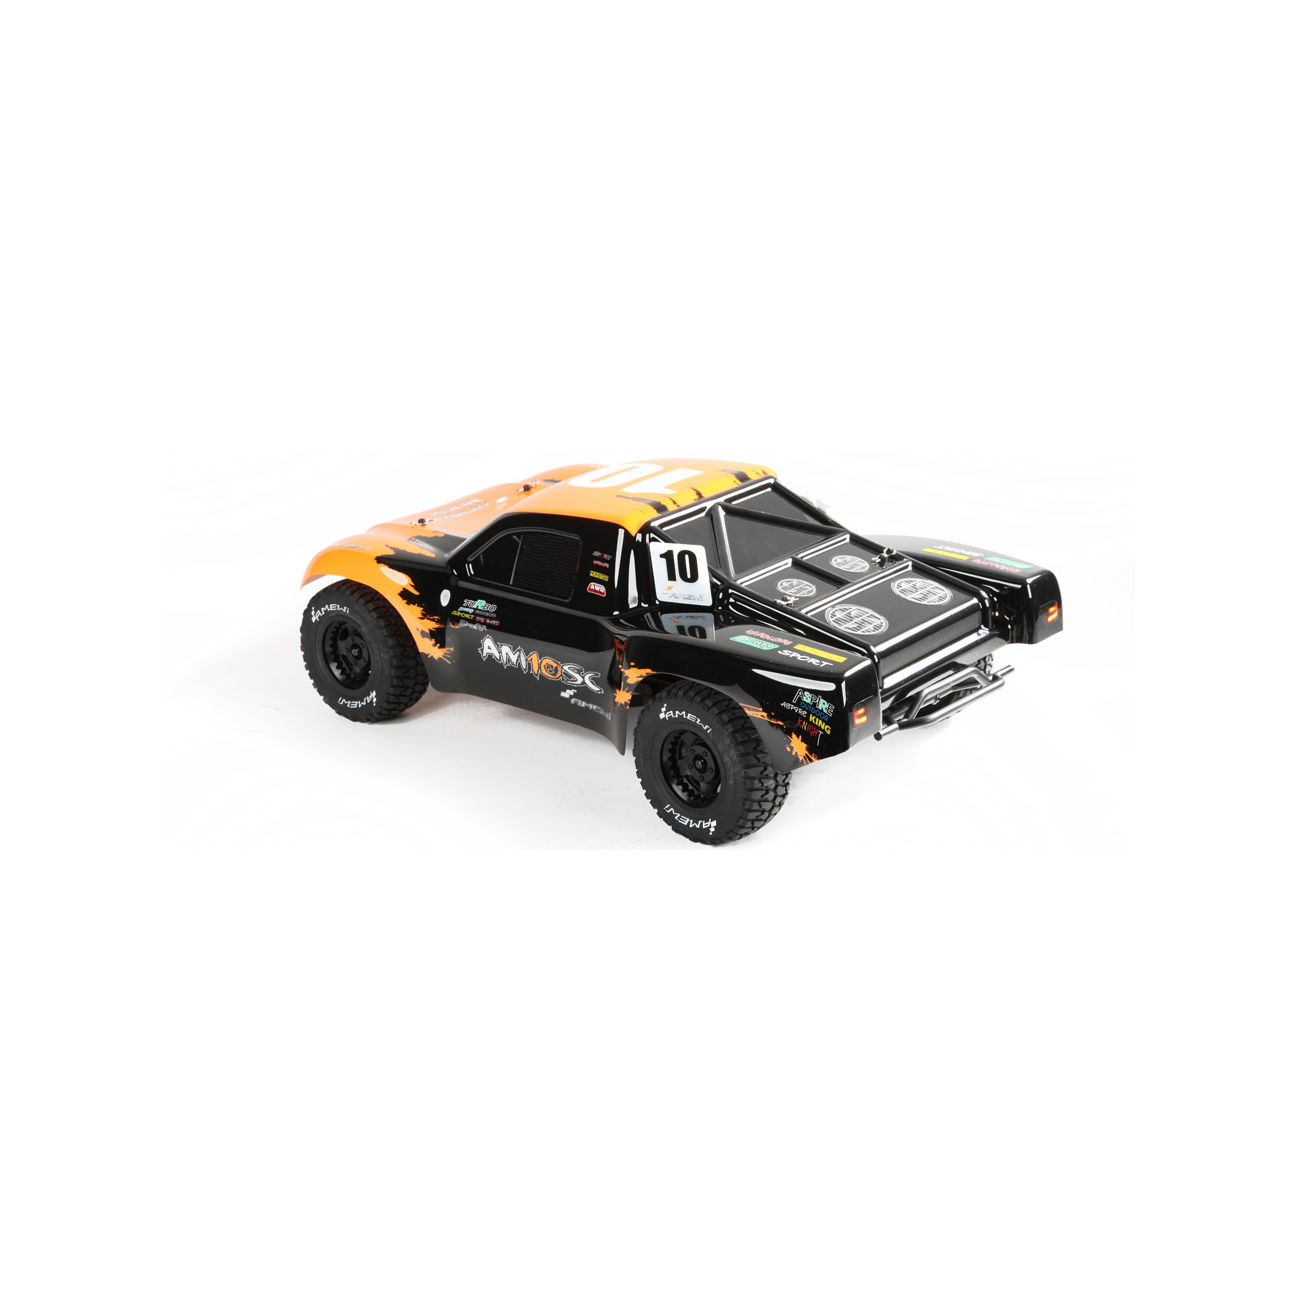 Amewi 1:10 AM10SC V2 Brushless 4WD Short Course Truck 2,4 GHz RTR Set 22139 3